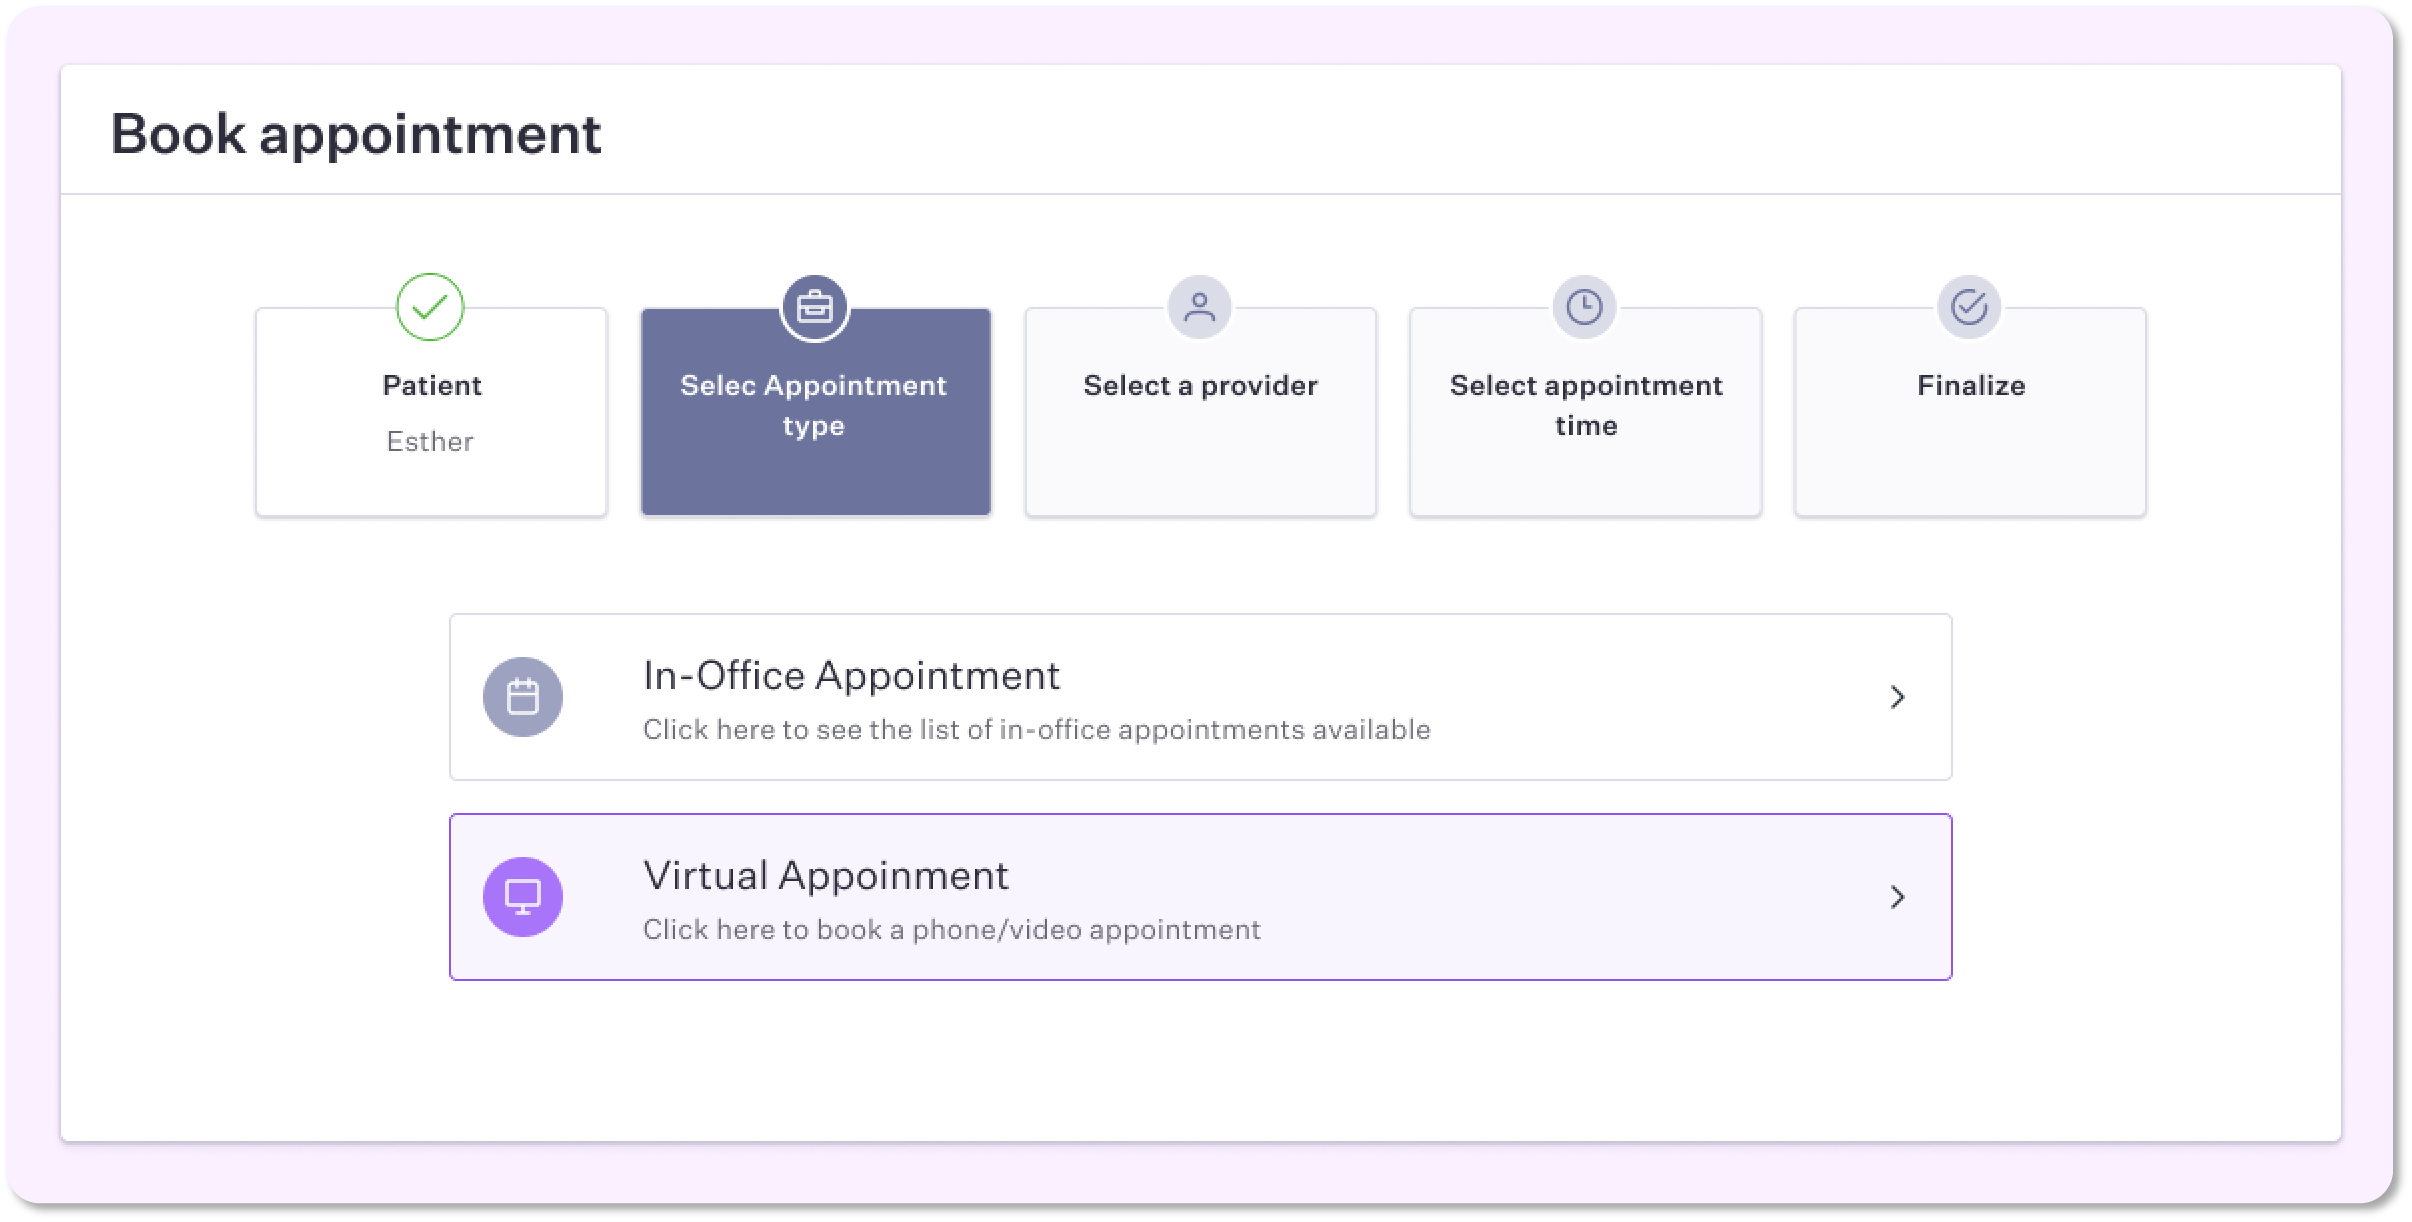 Allow your patients to book virtual appointments through the patient portal